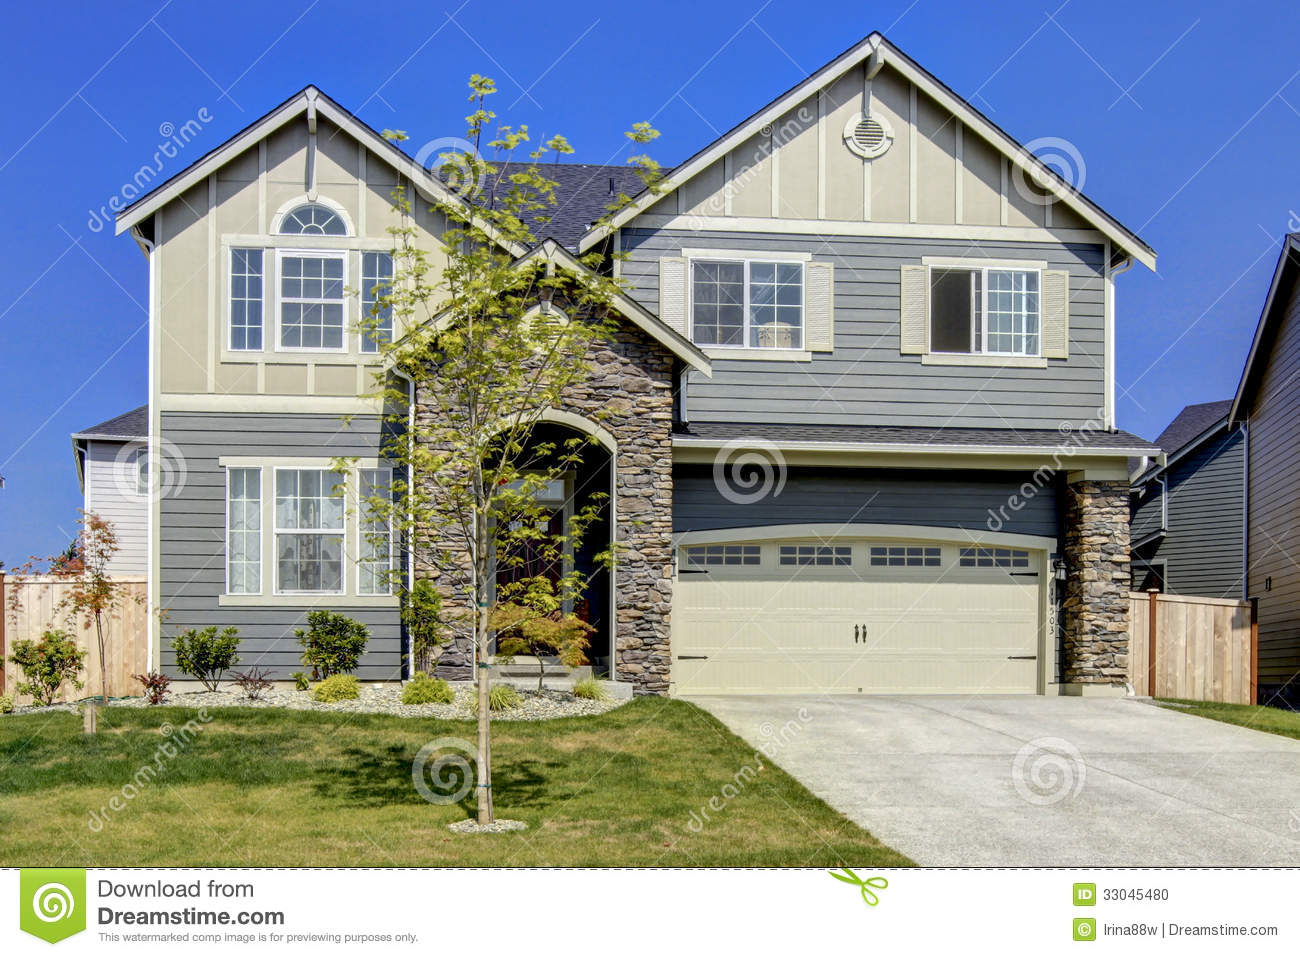 New american home exterior stock photo image 33045480 for New american homes